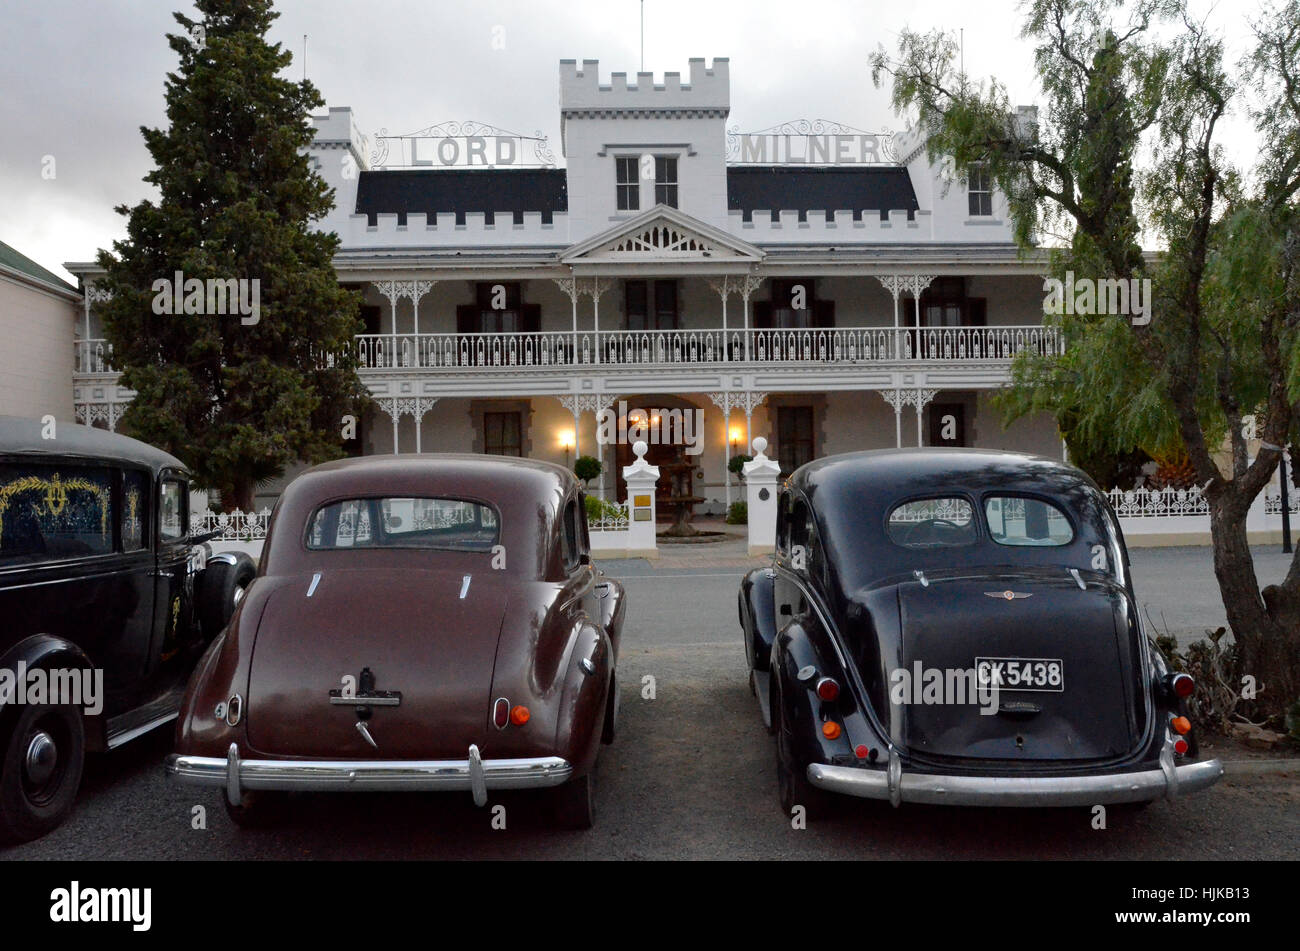 Old classic cars in front of historic Lord Milner hotel Stock Photo ...